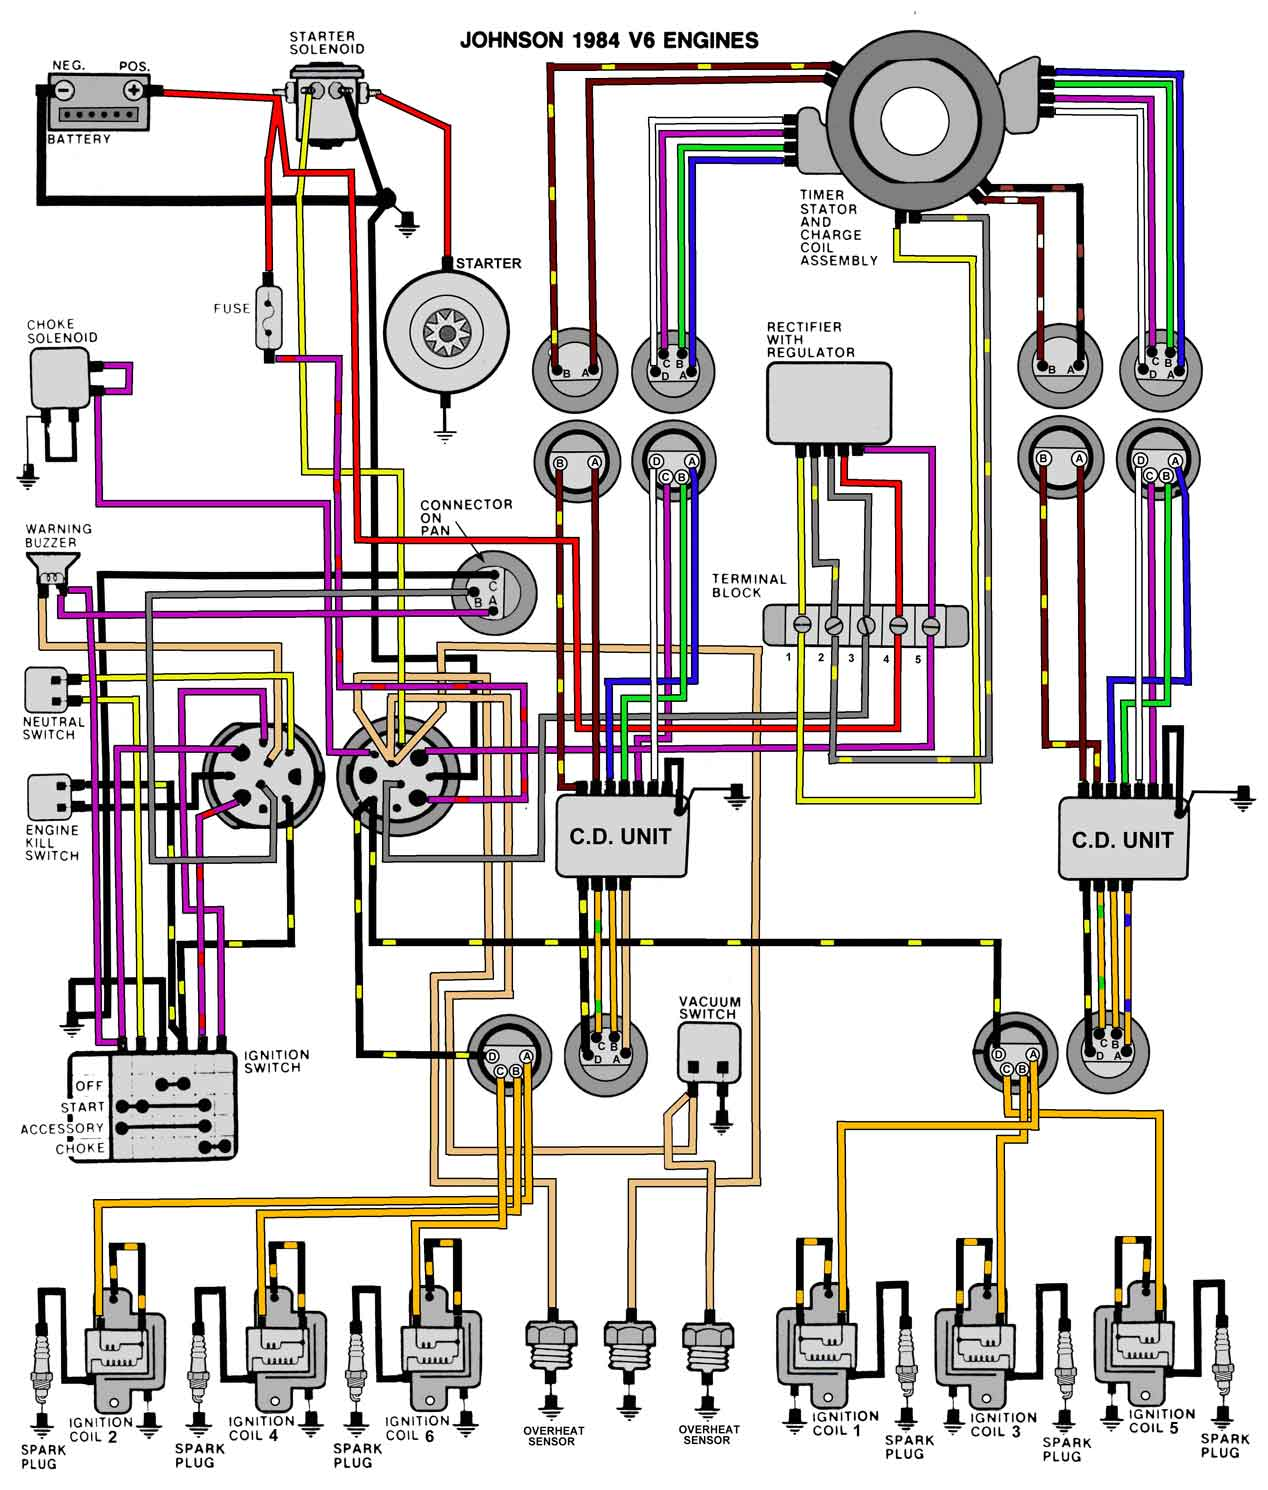 84_V6 mastertech marine evinrude johnson outboard wiring diagrams marine starter solenoid wiring diagram at edmiracle.co